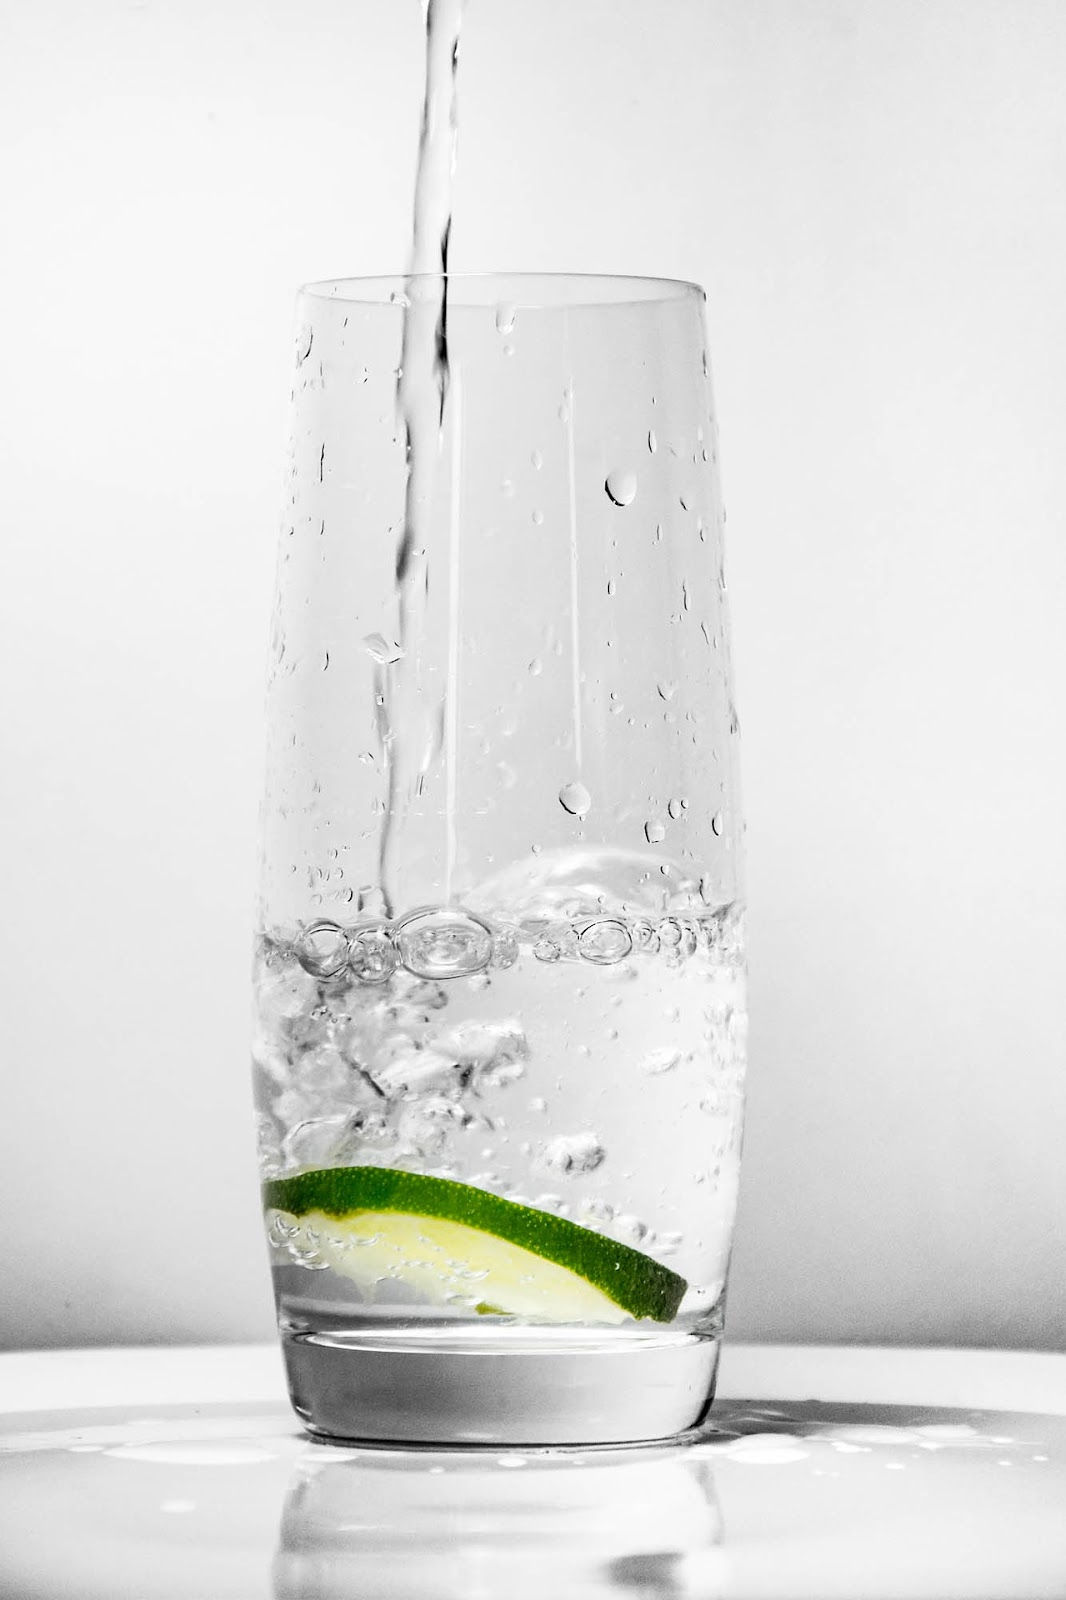 glass-for-water-1901700_1920.jpg